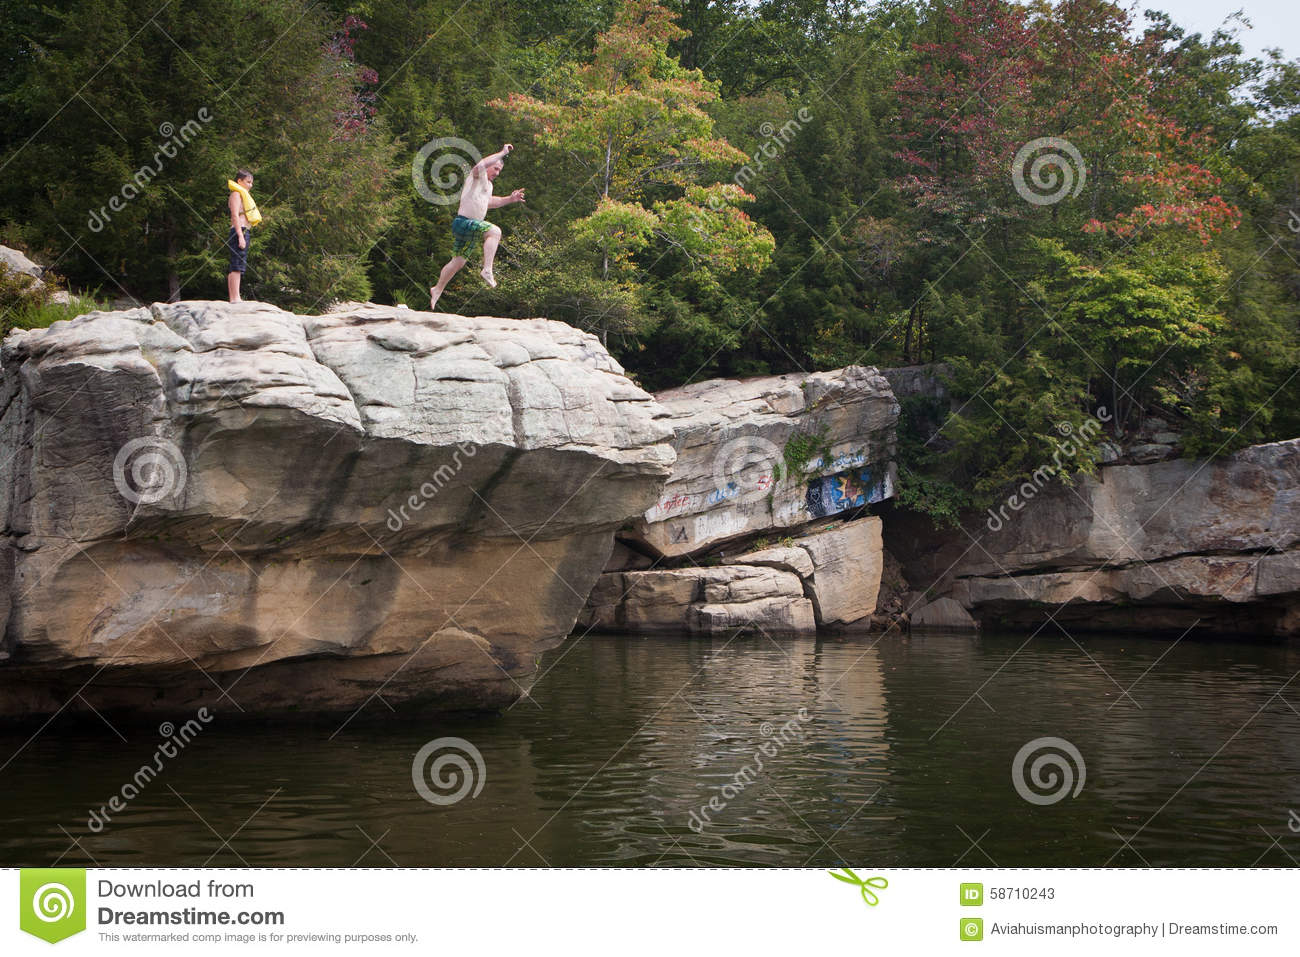 Person Jumping from Cliff into Lake